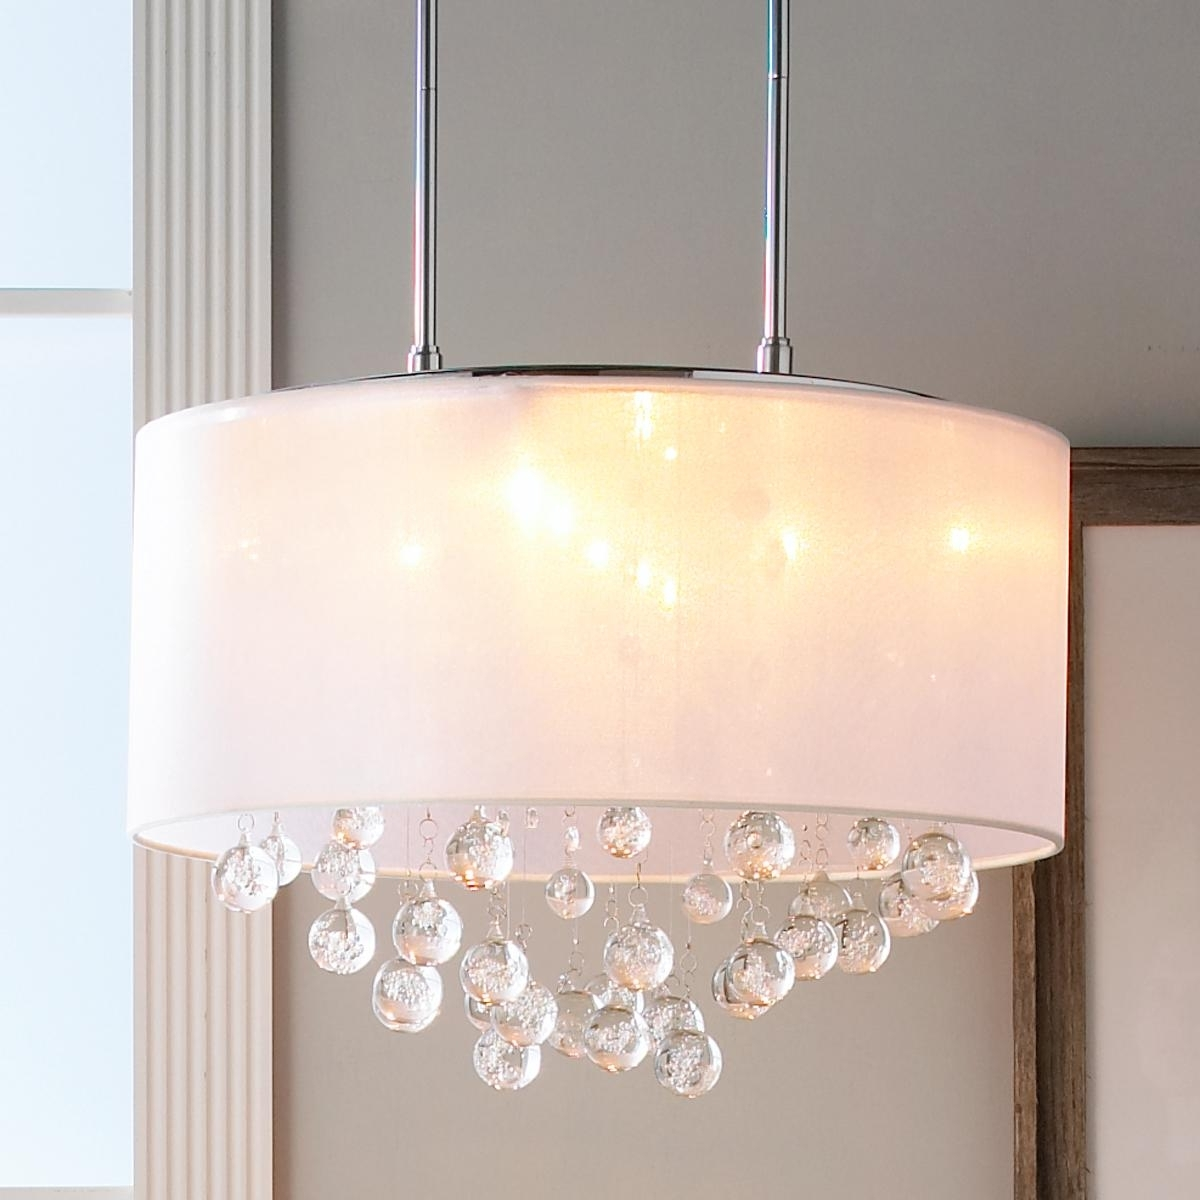 Popular Metal Ball Candle Chandeliers Intended For Appealing Lamp Shade Chandelier Beautiful Candle Light With The Help (View 15 of 20)